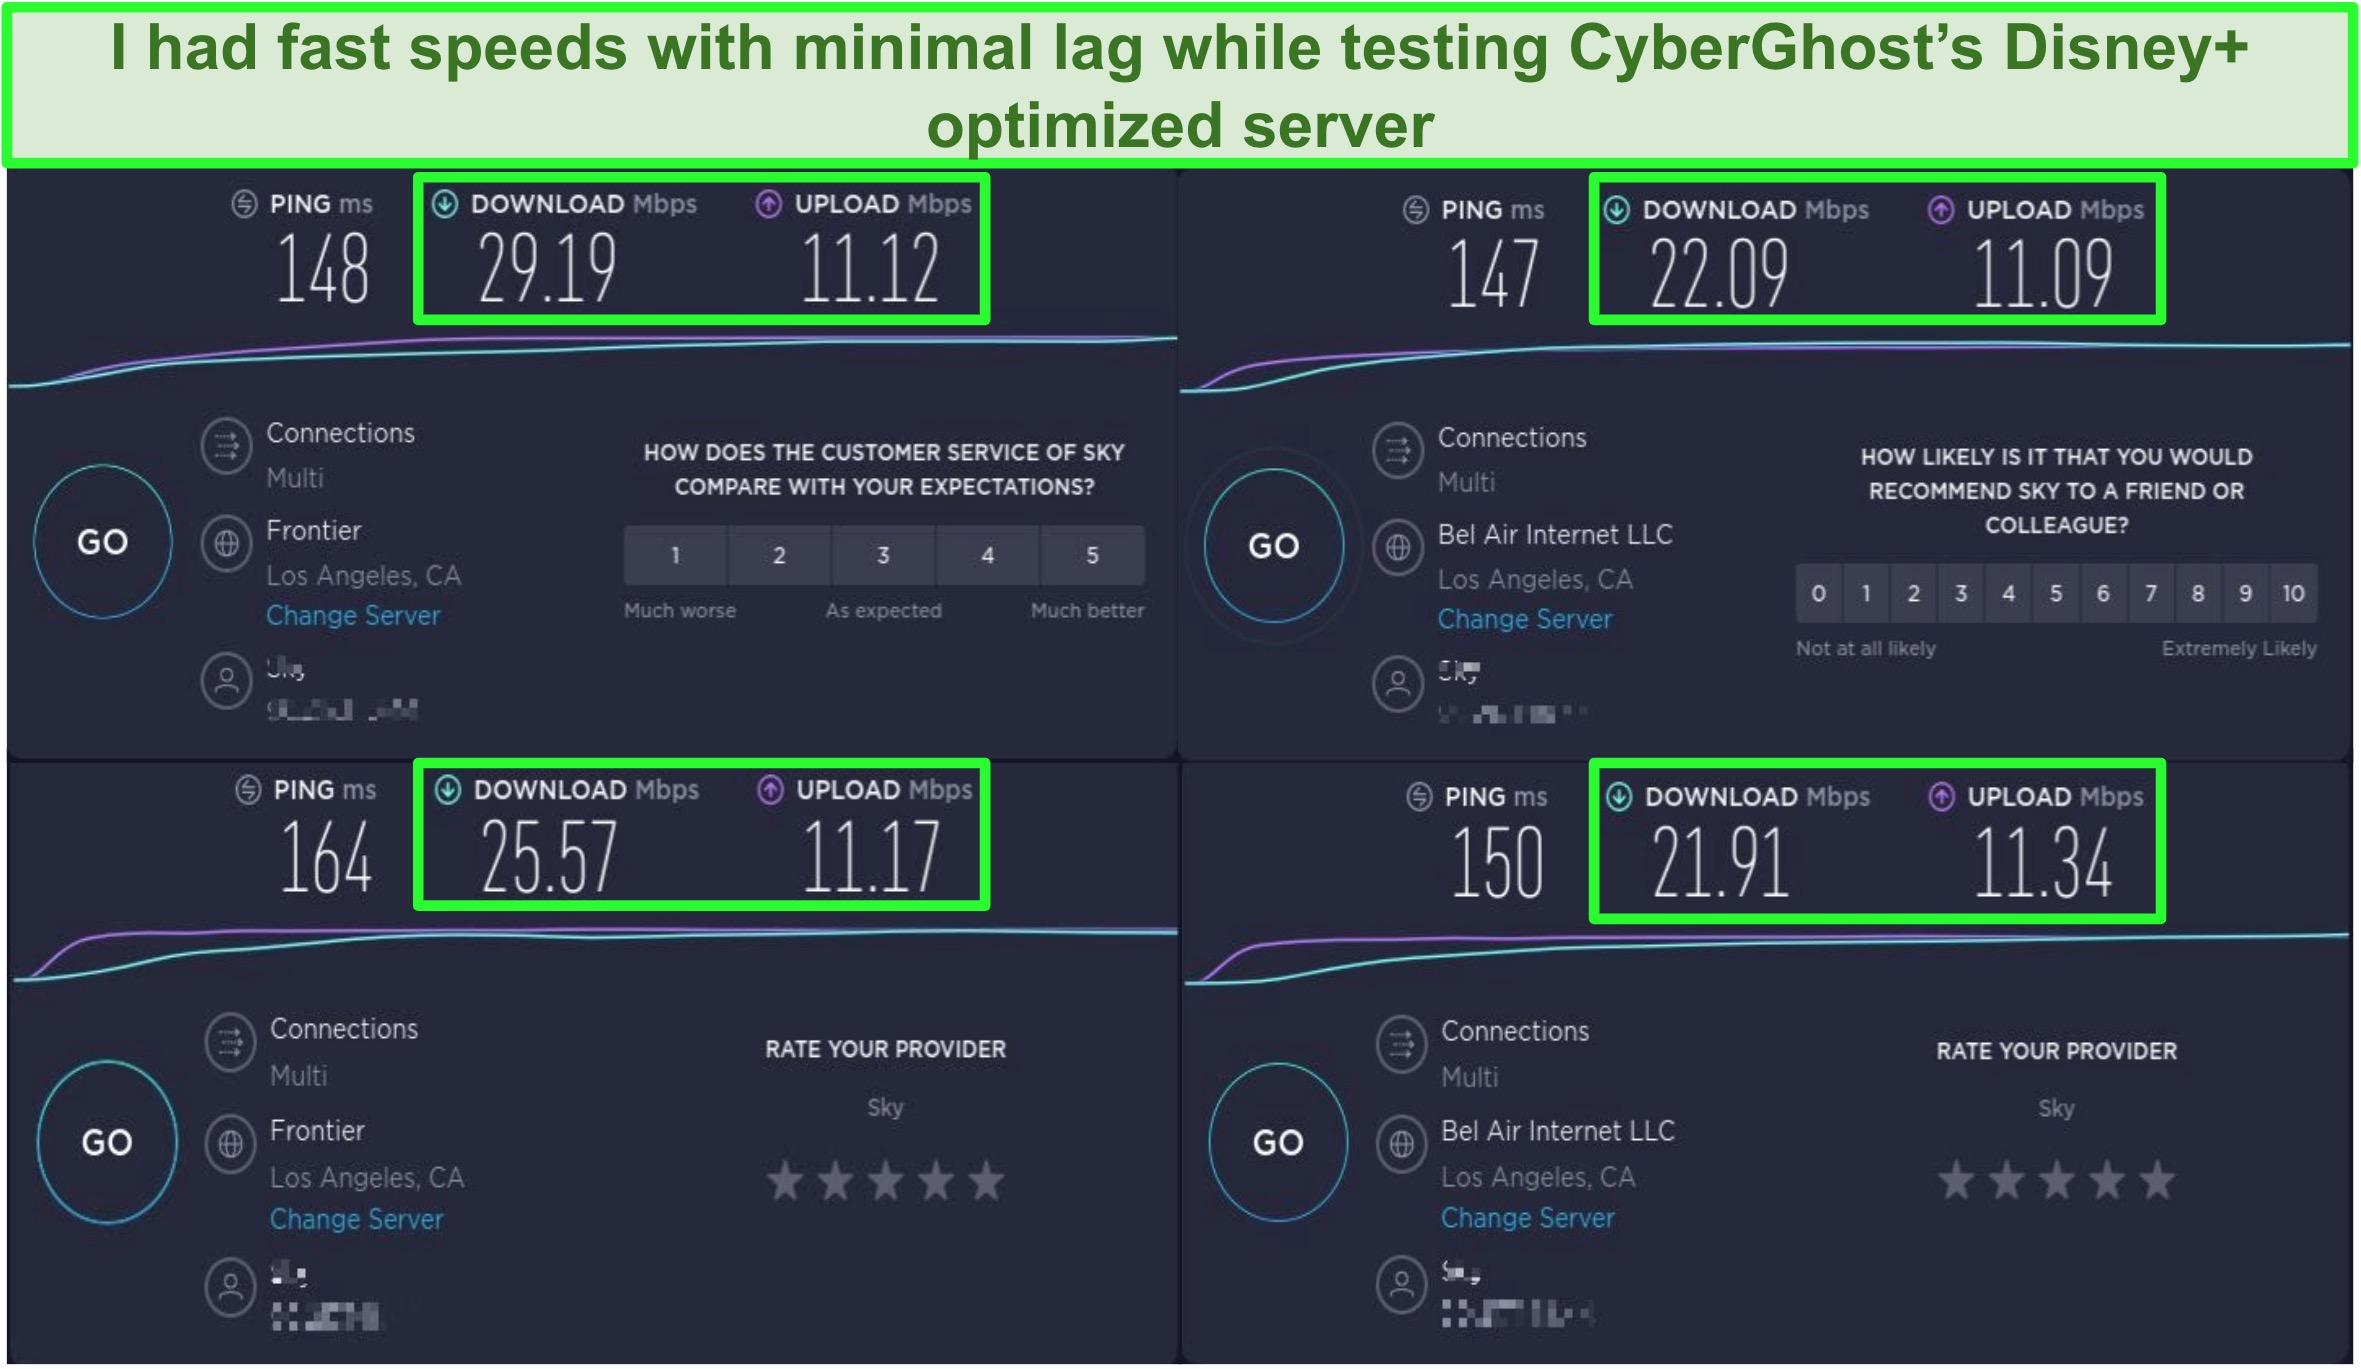 Screenshot of speed tests when connected to CyberGhost's optimized Disney+ server in the US